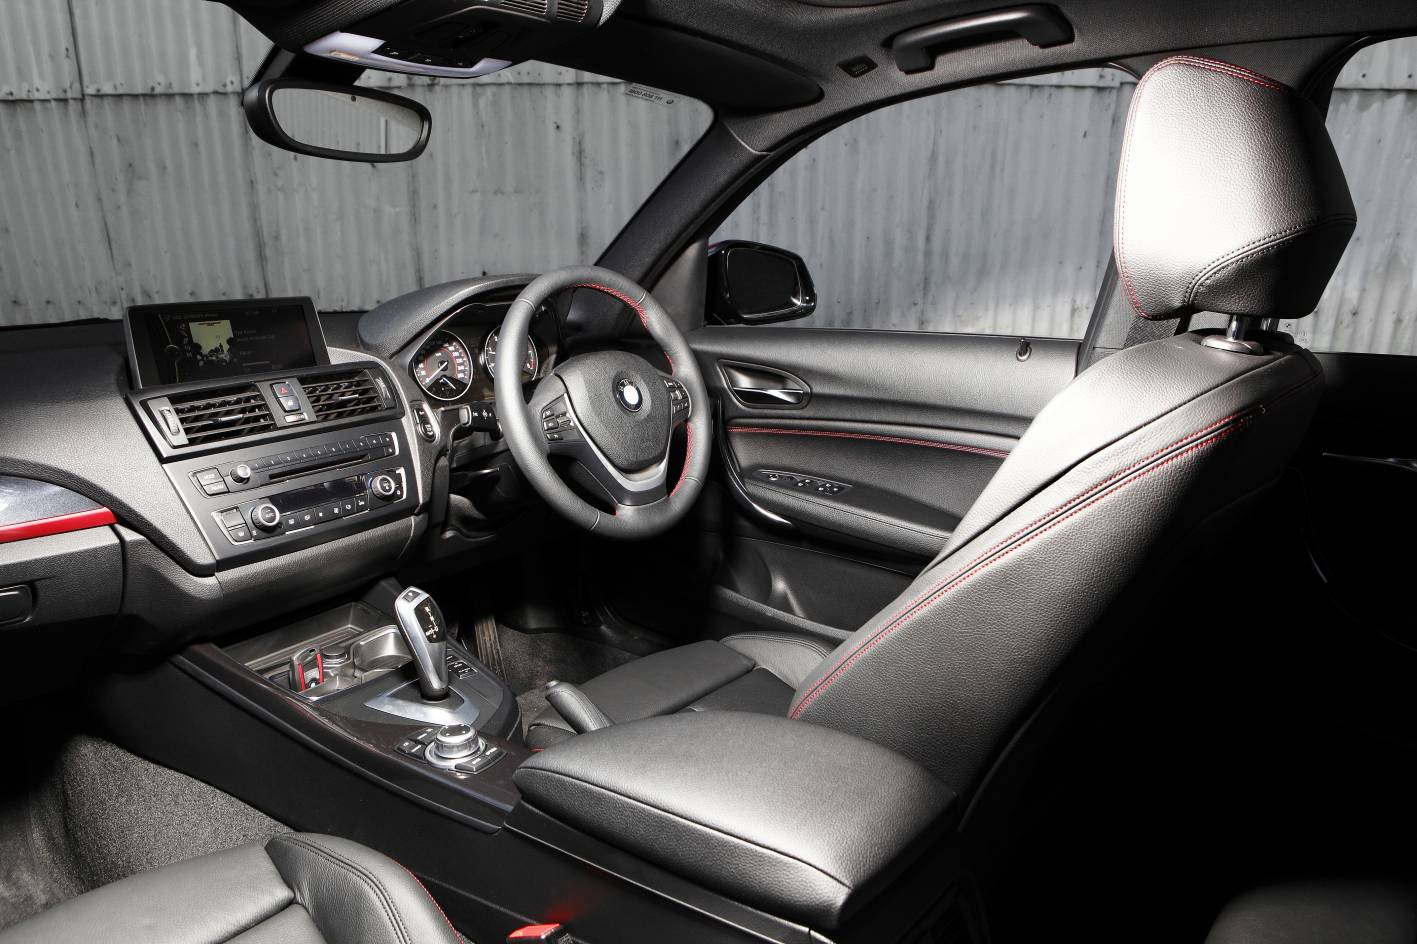 2012_bmw_1_series_press_photos_01_118d_05